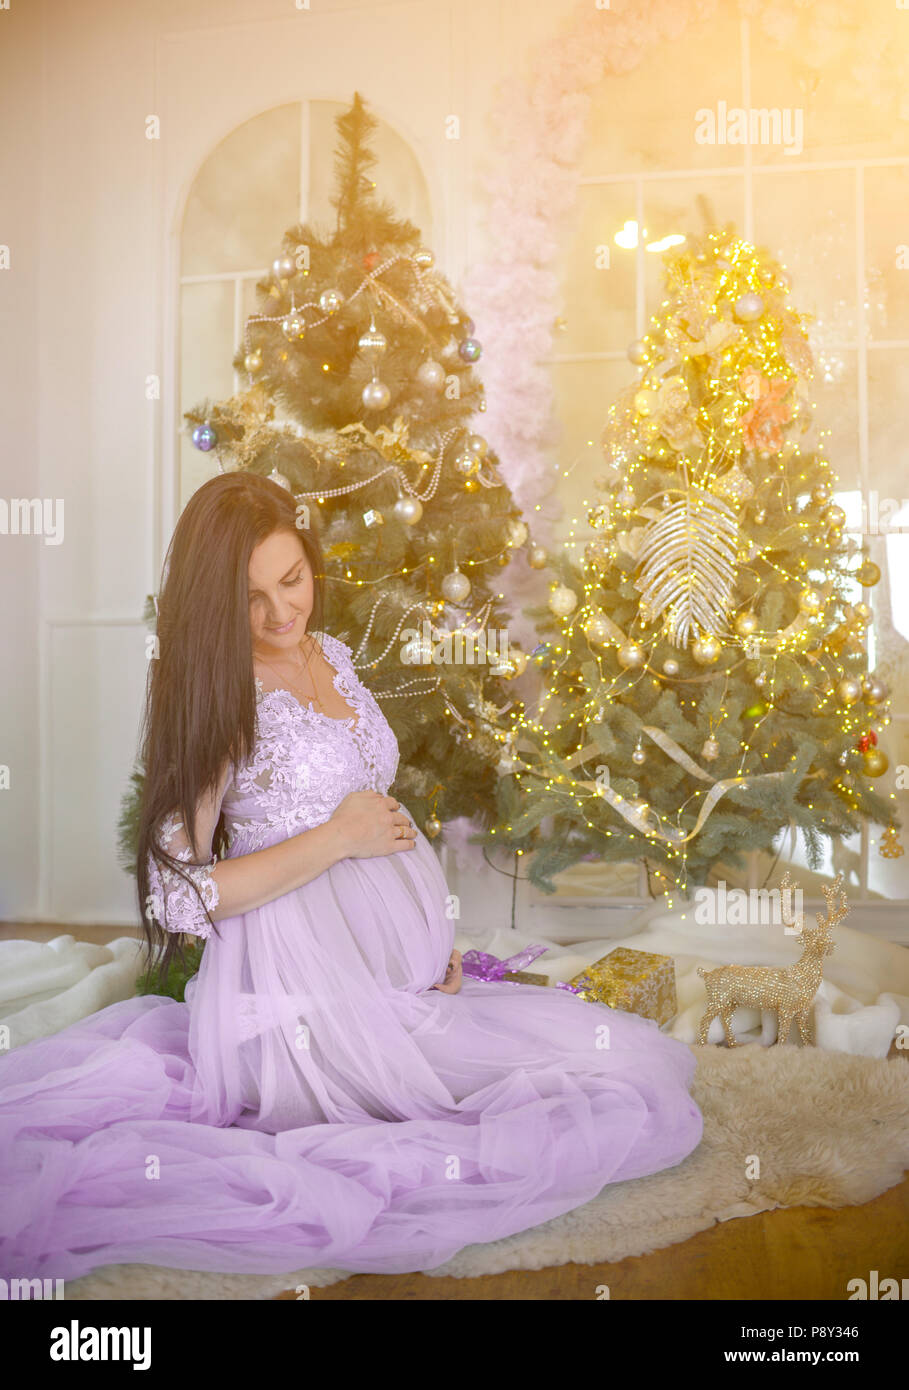 Odessa, Ukraine. 05 January 2017. Young pregnant woman in pink dress ...